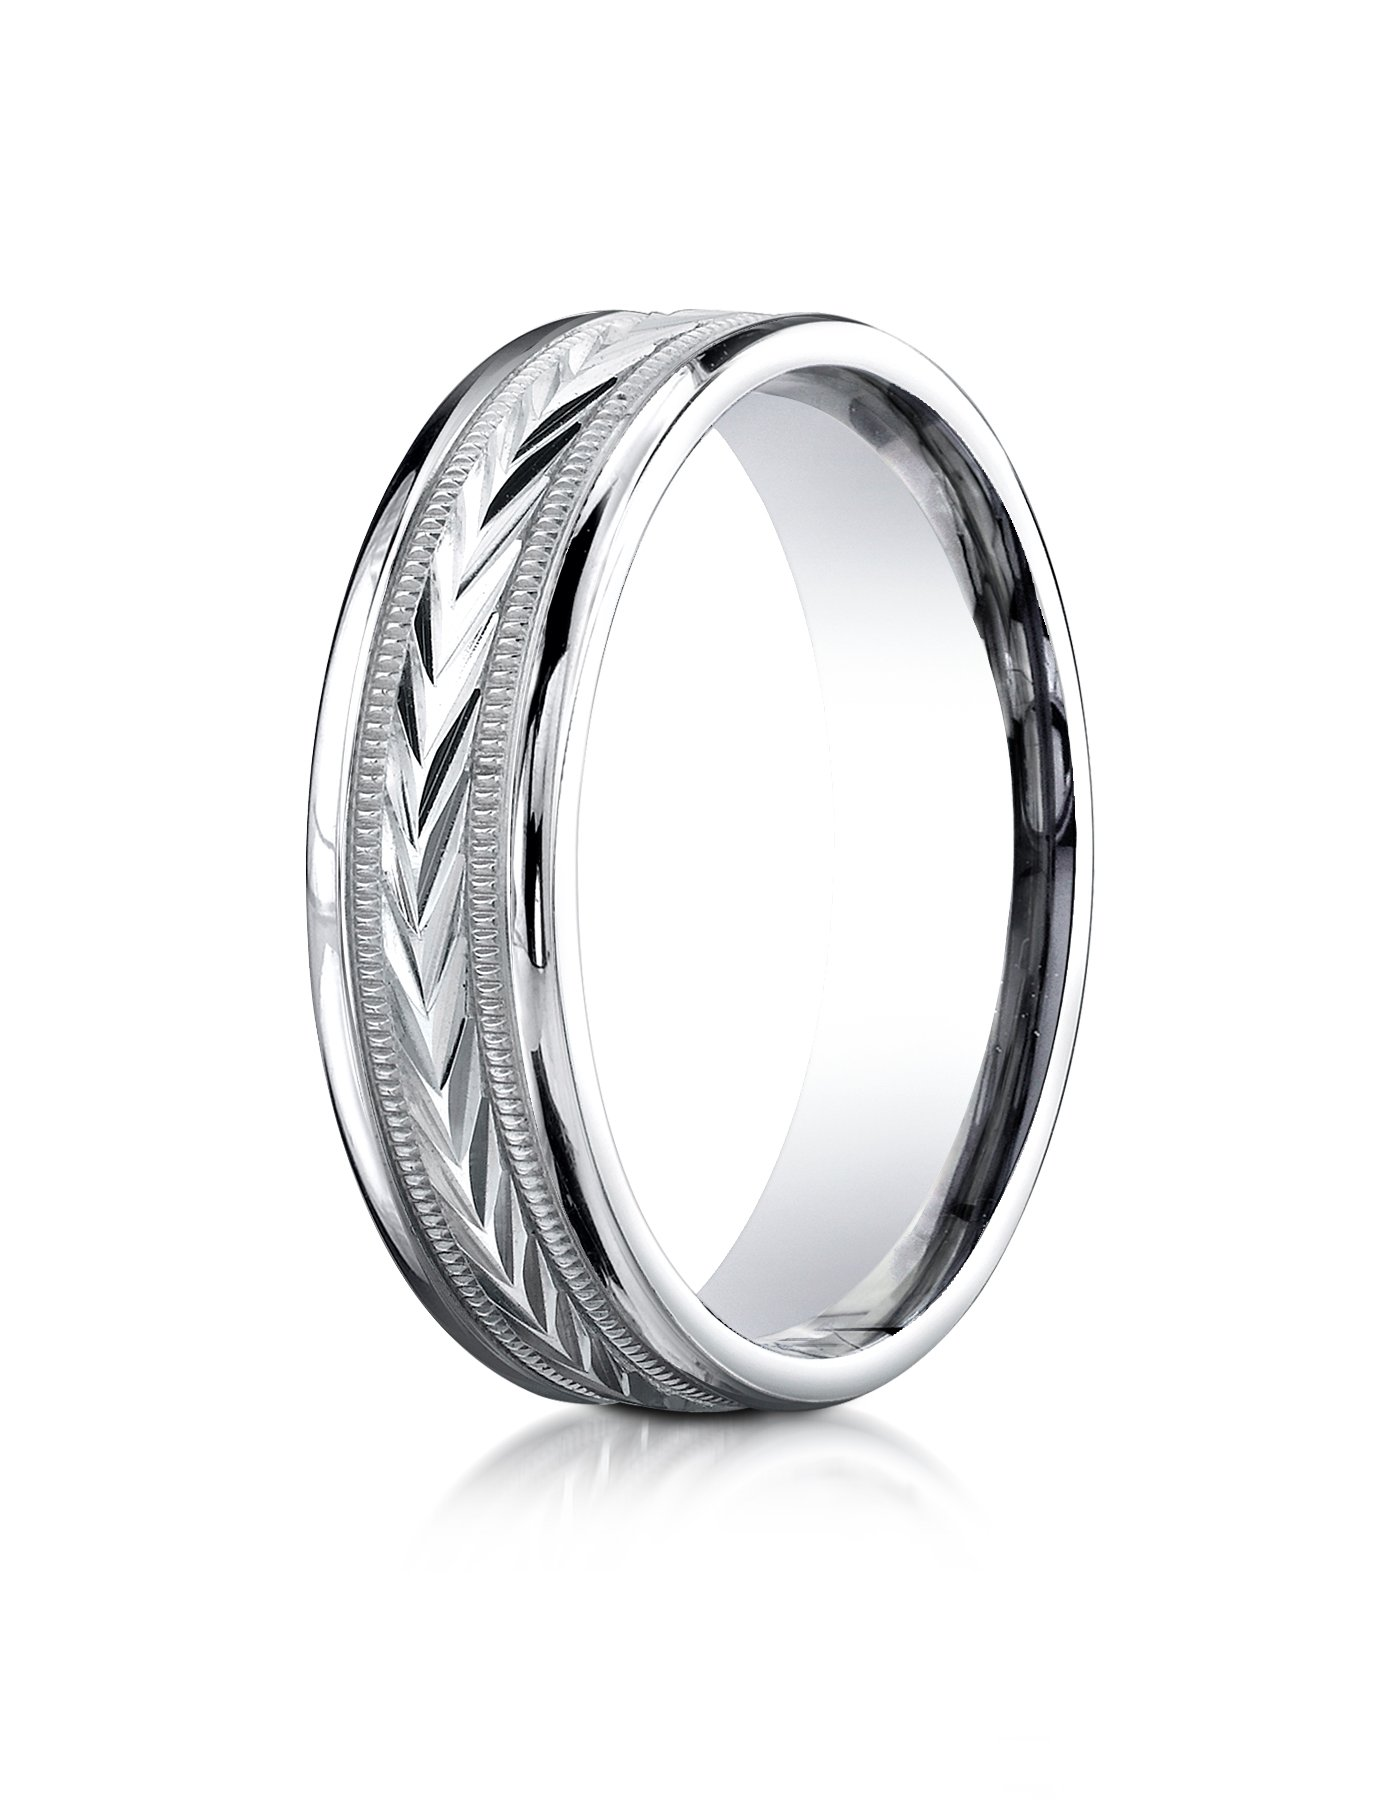 10k White Gold 6mm Comfort-Fit Harvest of Love Round Edge Carved Design Wedding Band Ring for Men & Women Size 4 to 15